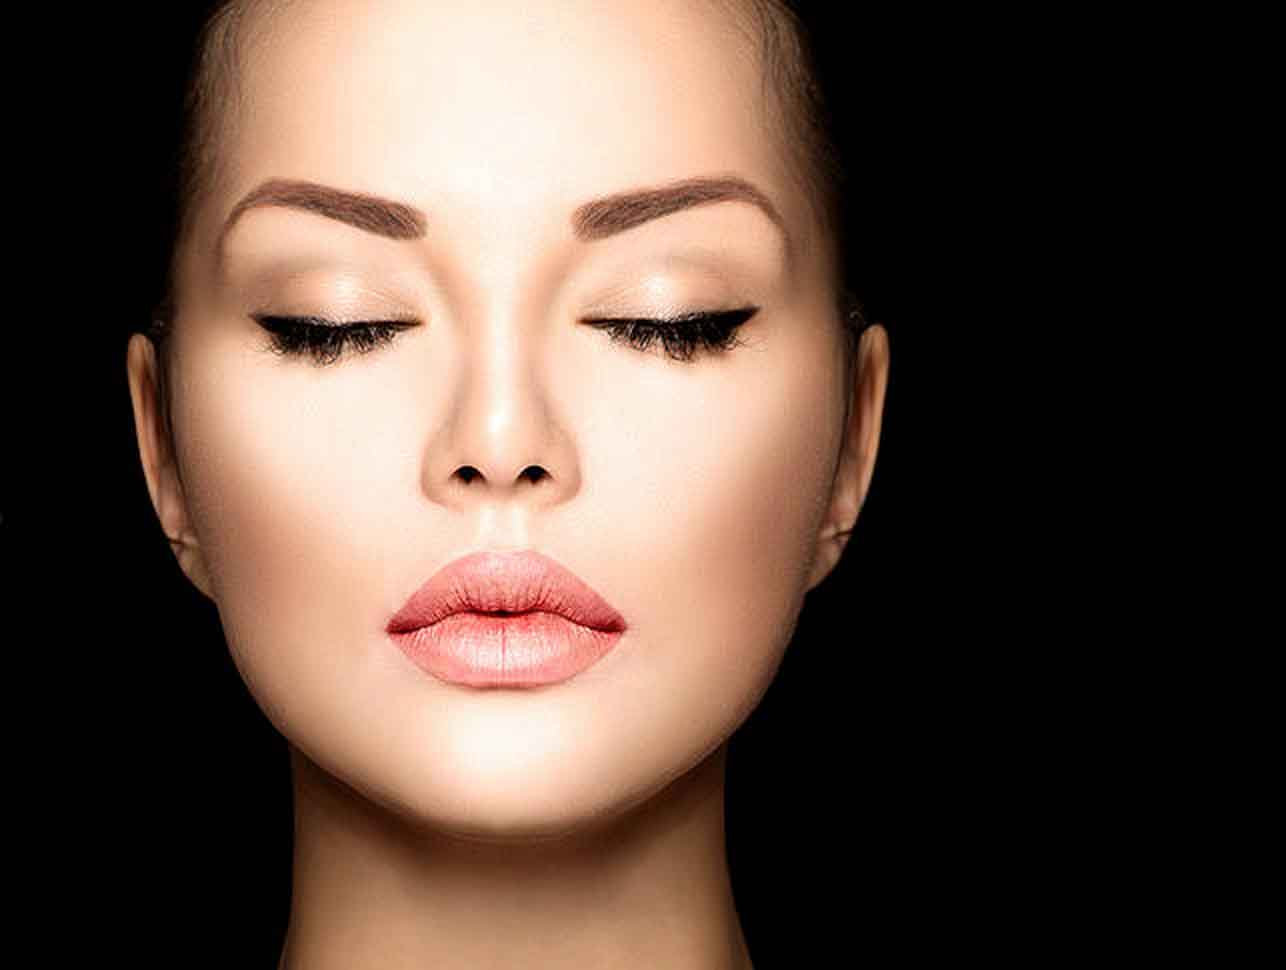 Beauty Service - Lashes, Brows, Waxing